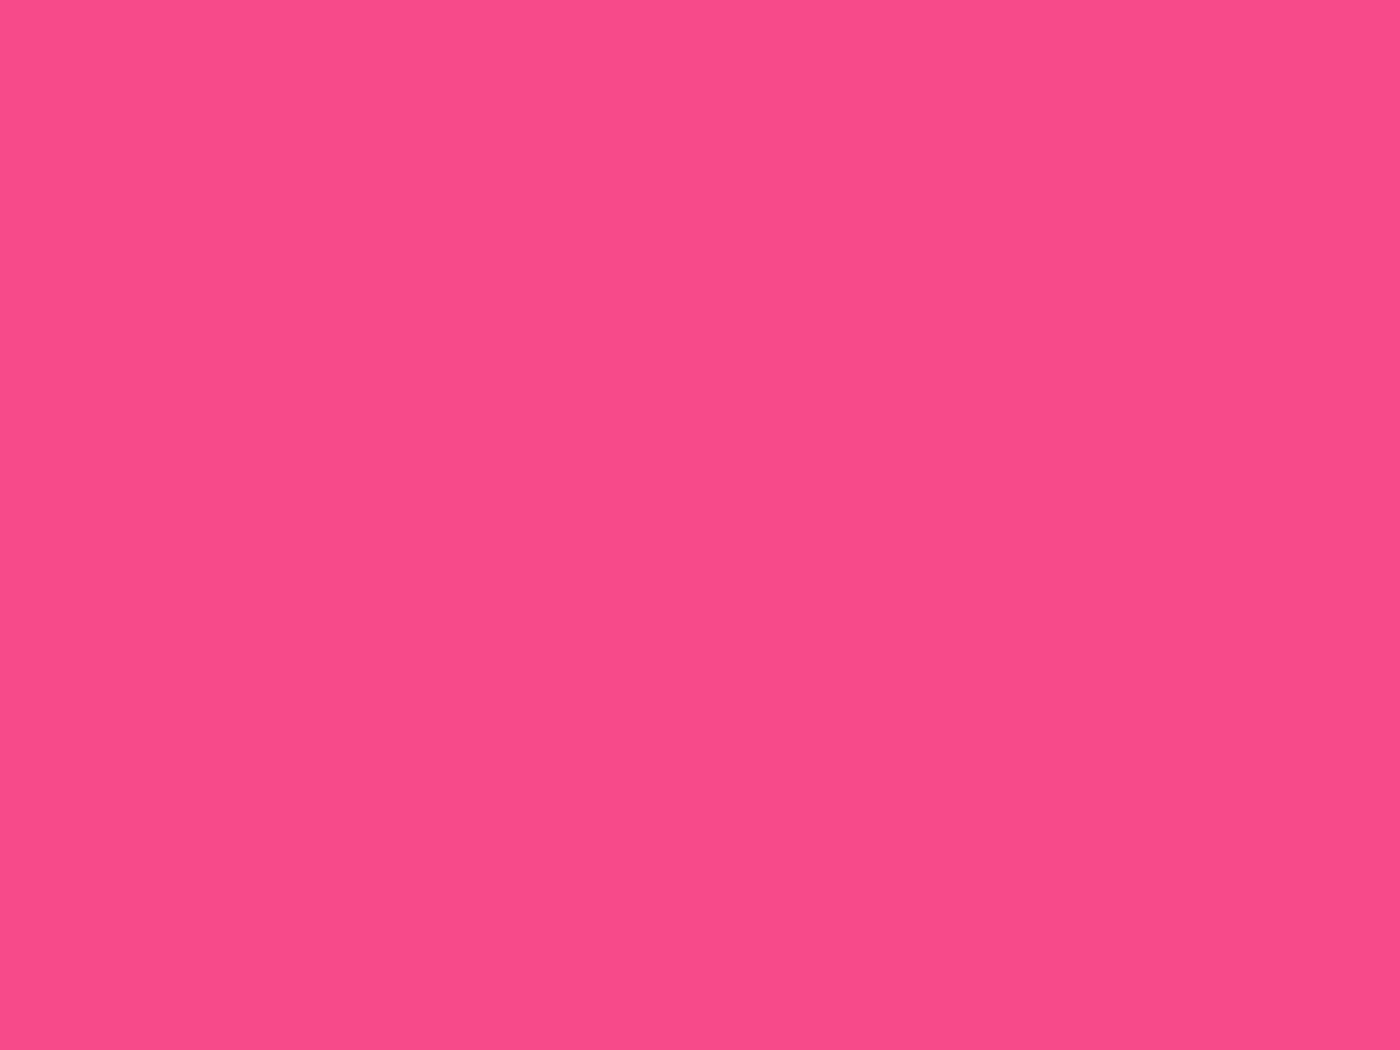 1400x1050 French Rose Solid Color Background